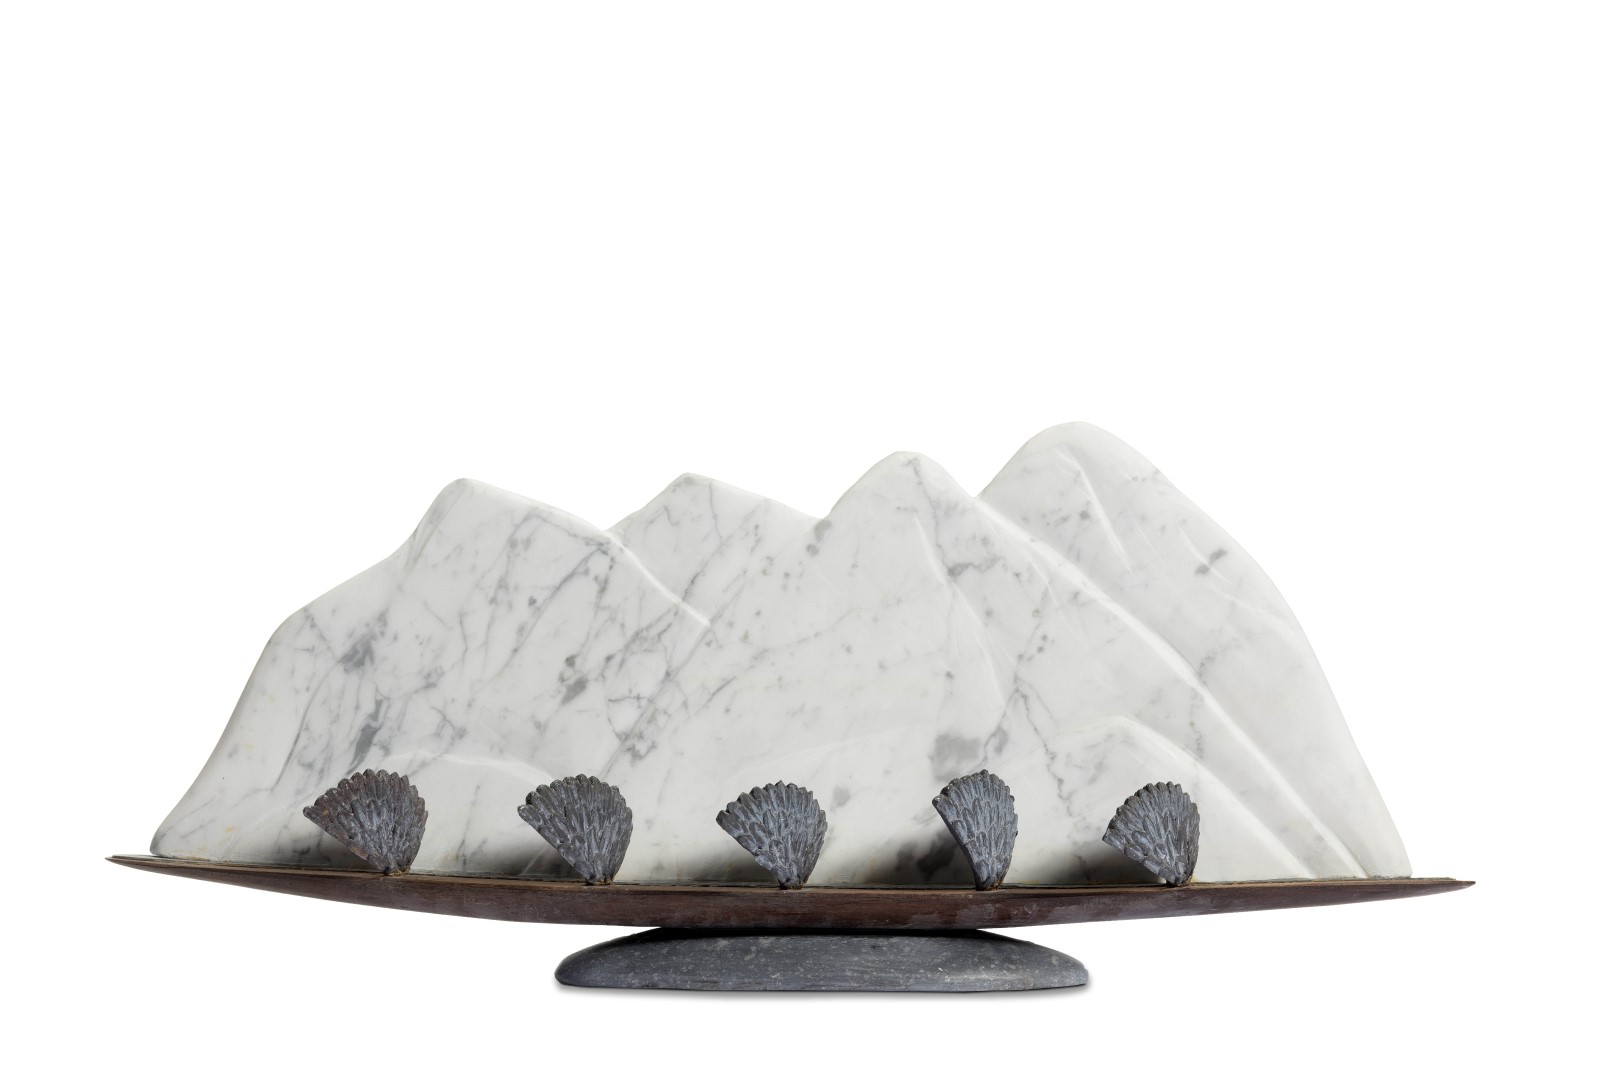 Moving Mountains, marmer, lood, azobeen, hardsteen, h30x70x20cm, €4.200